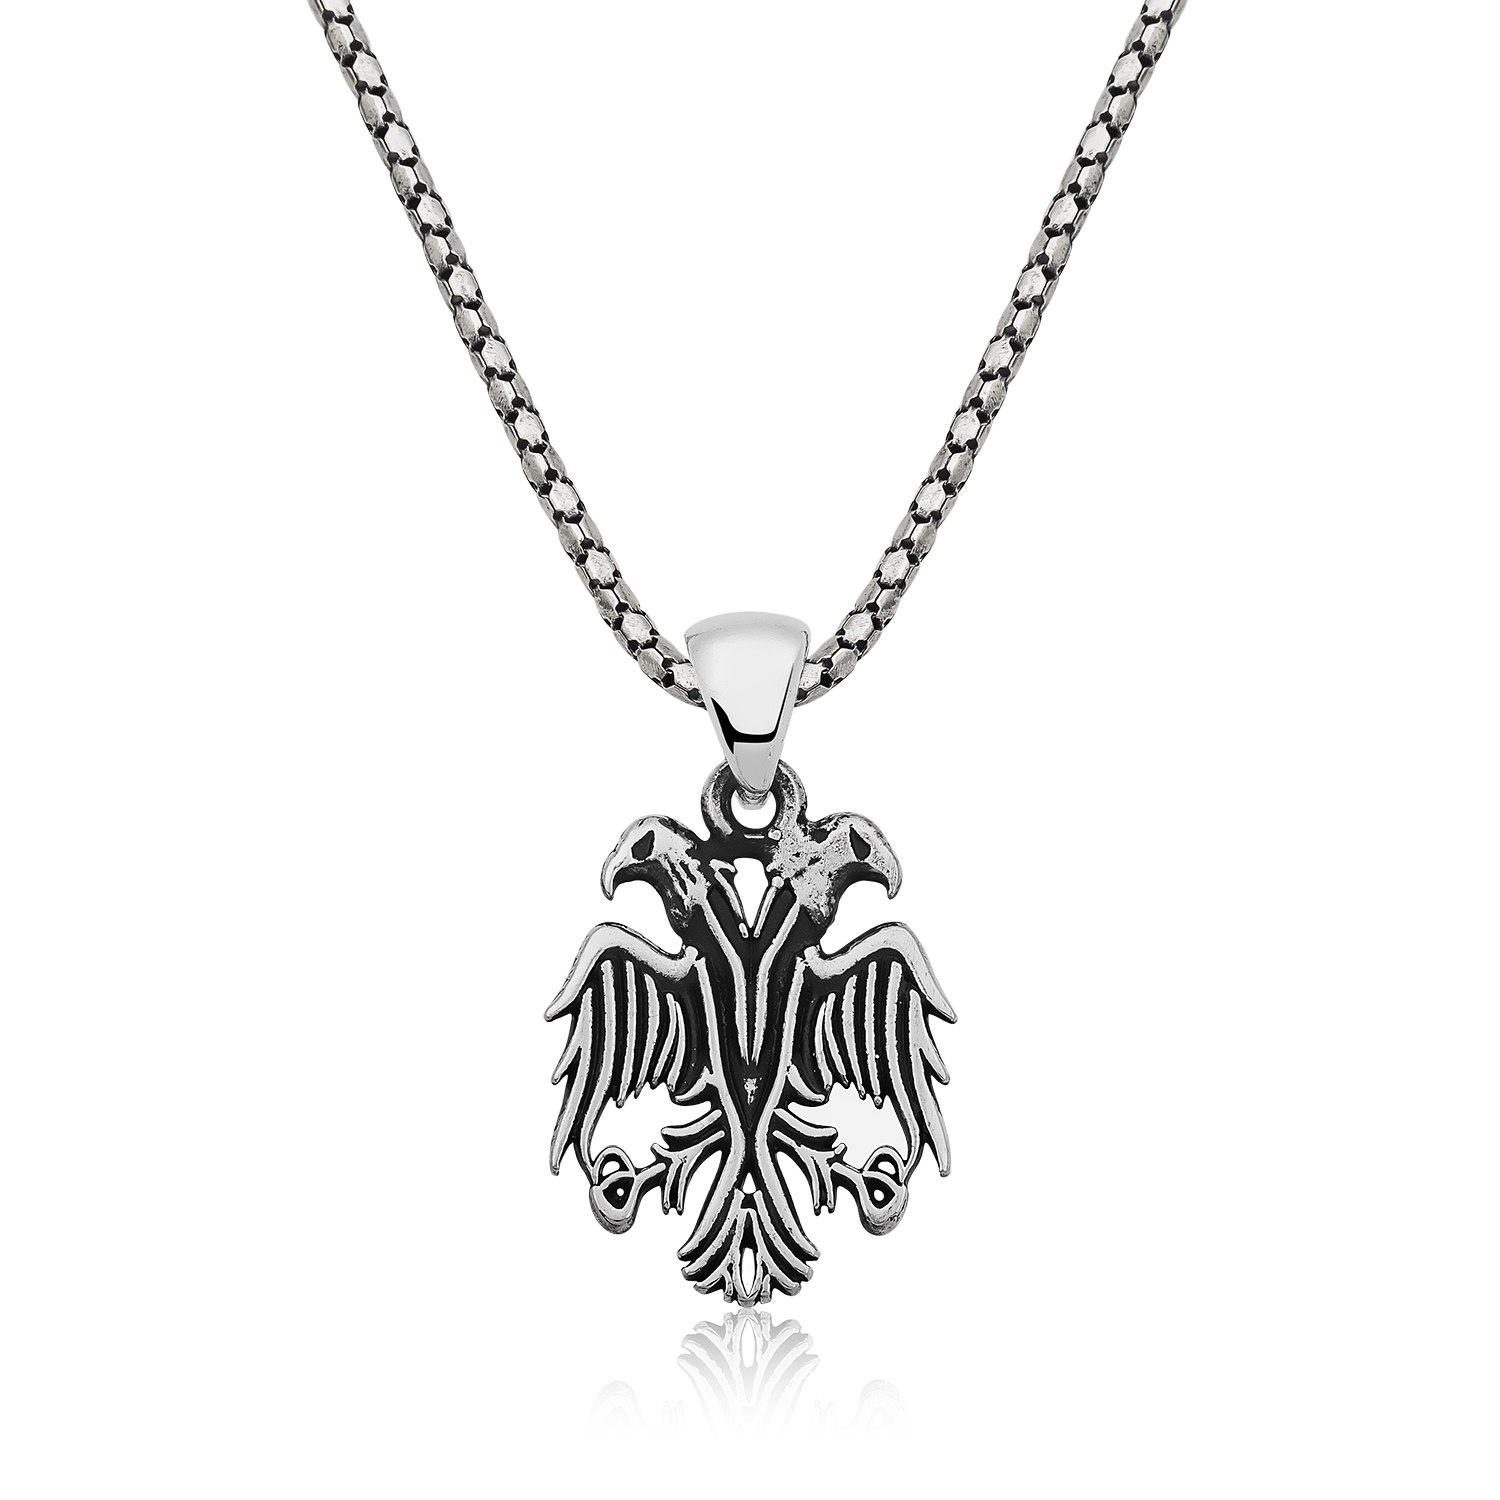 Double headed eagle mens silver necklace islamic jewelry double headed eagle mens silver necklace ij1 2032 islamic jewelry aloadofball Choice Image